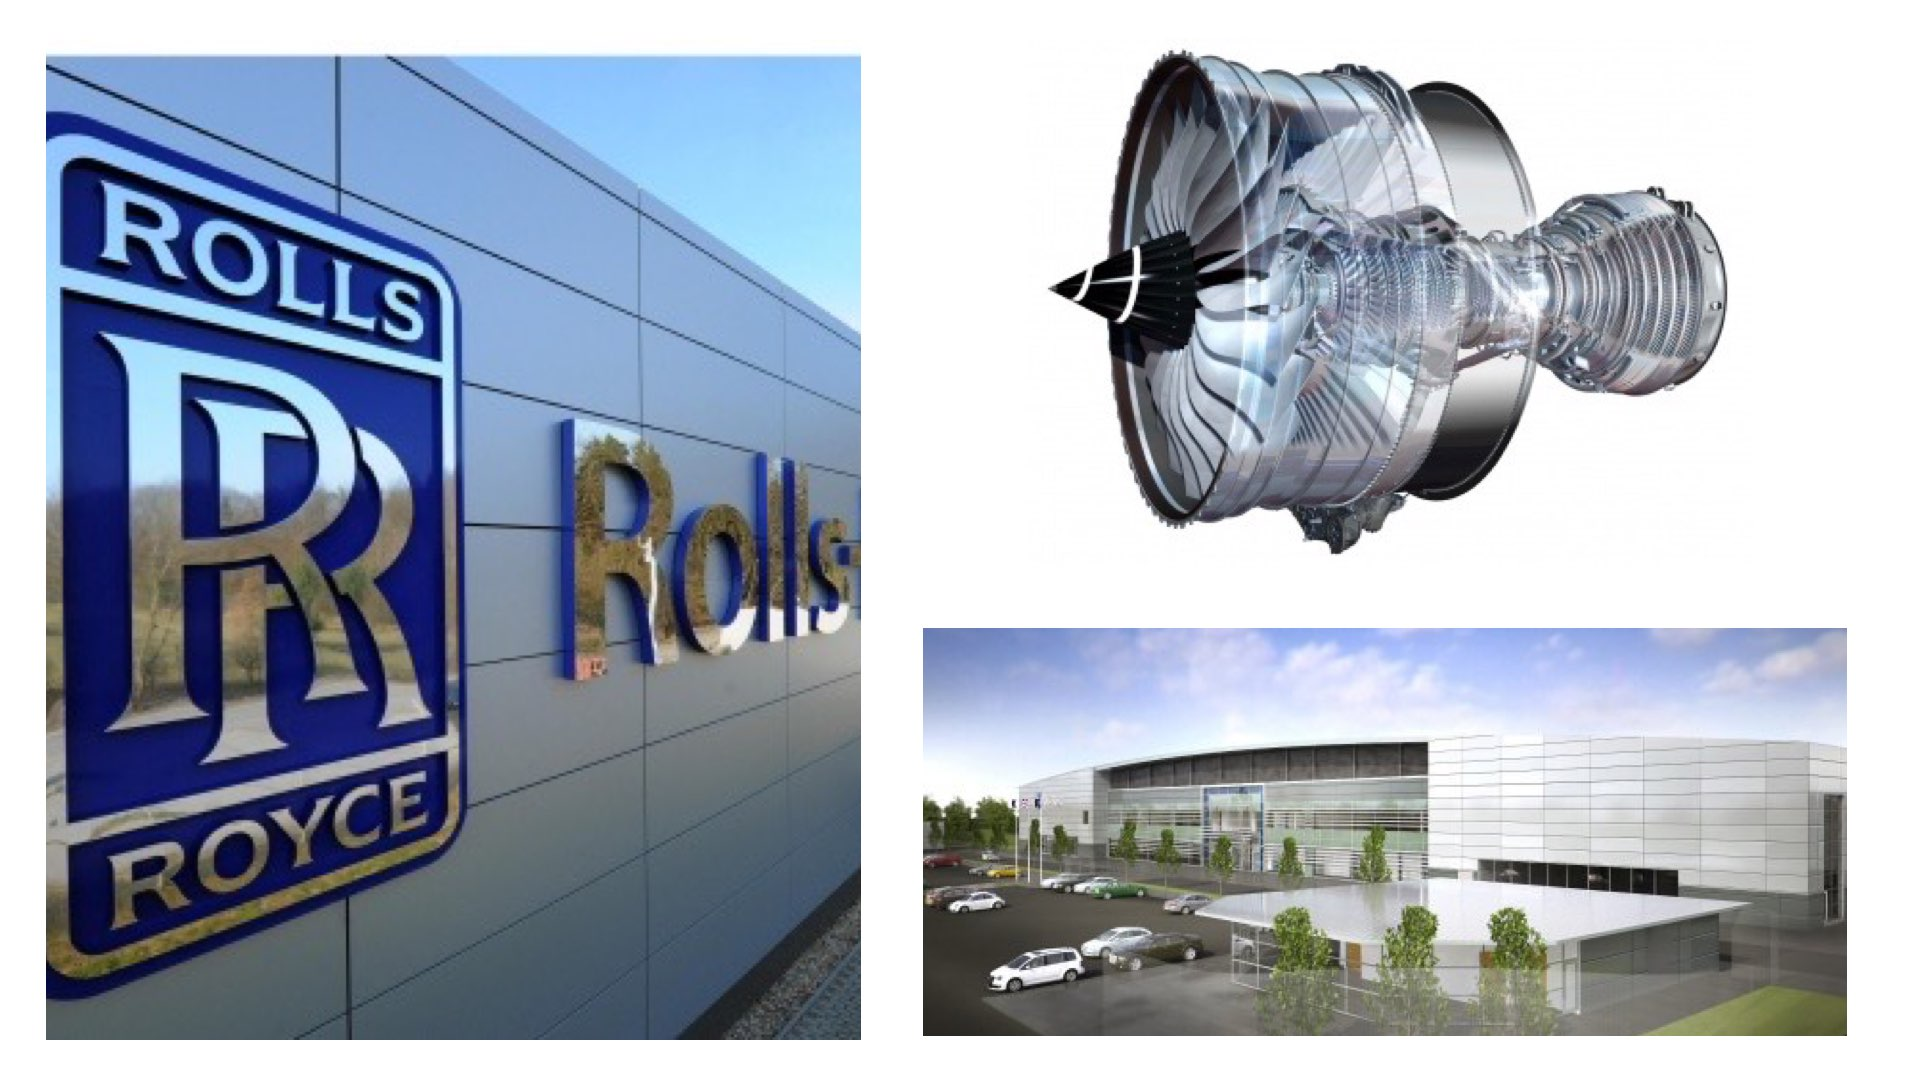 TClarke Newcastle selected for major new Rolls Royce project